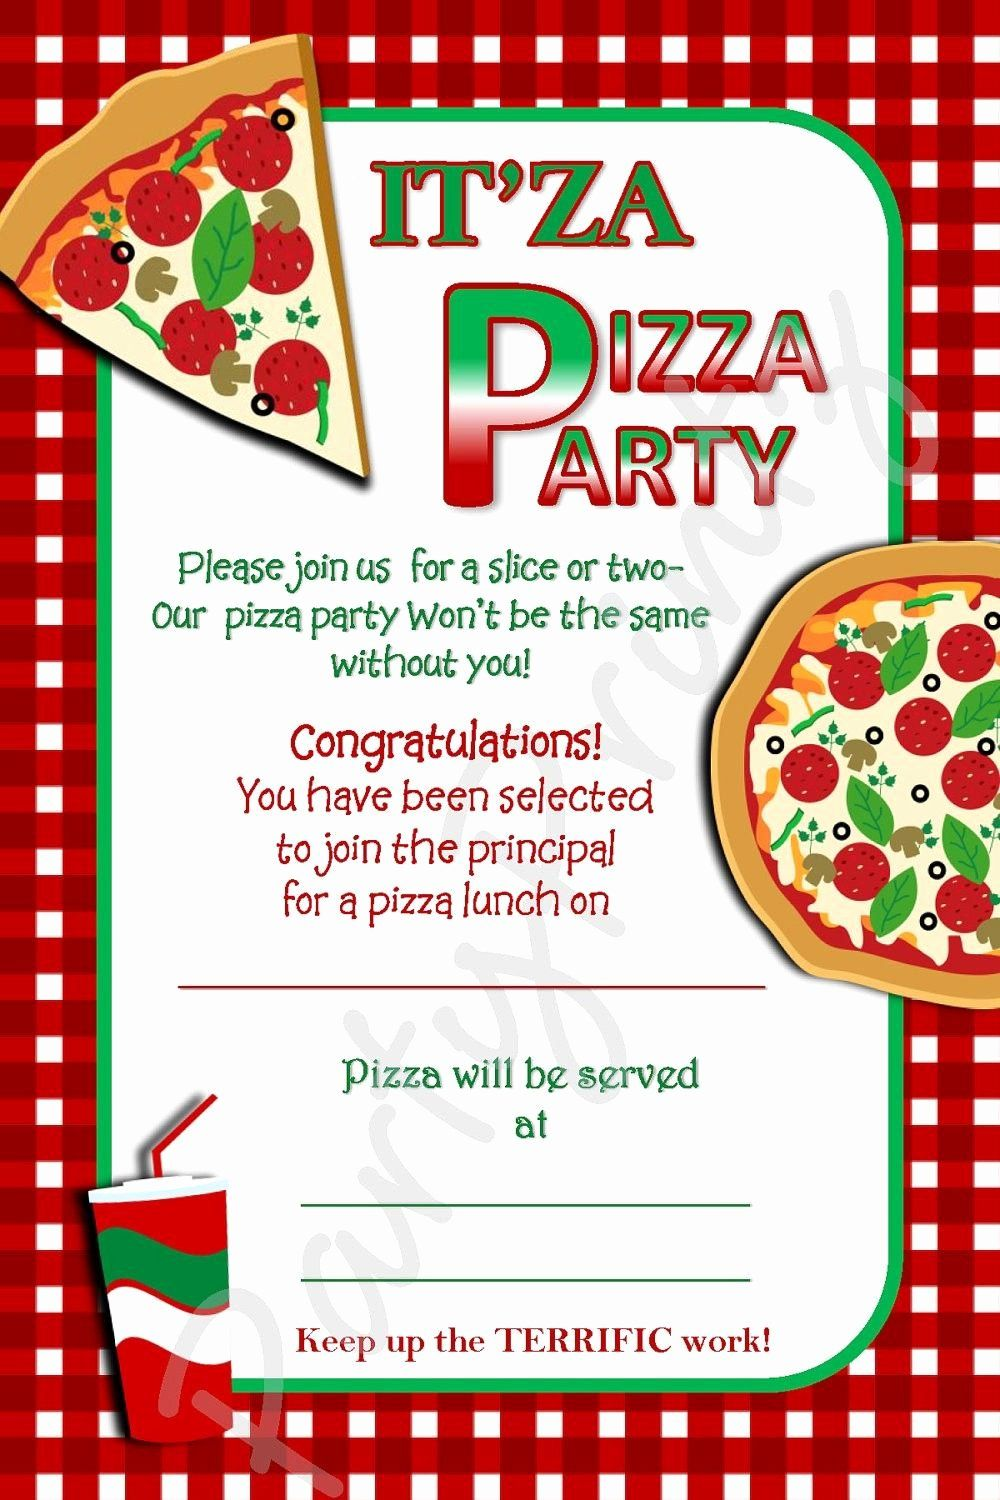 Pizza Party Invitations Template Inspirational Pizza Party Invitation Template F Free Party Invitations Pizza Party Invitations Free Party Invitation Templates Pizza party invitation template free